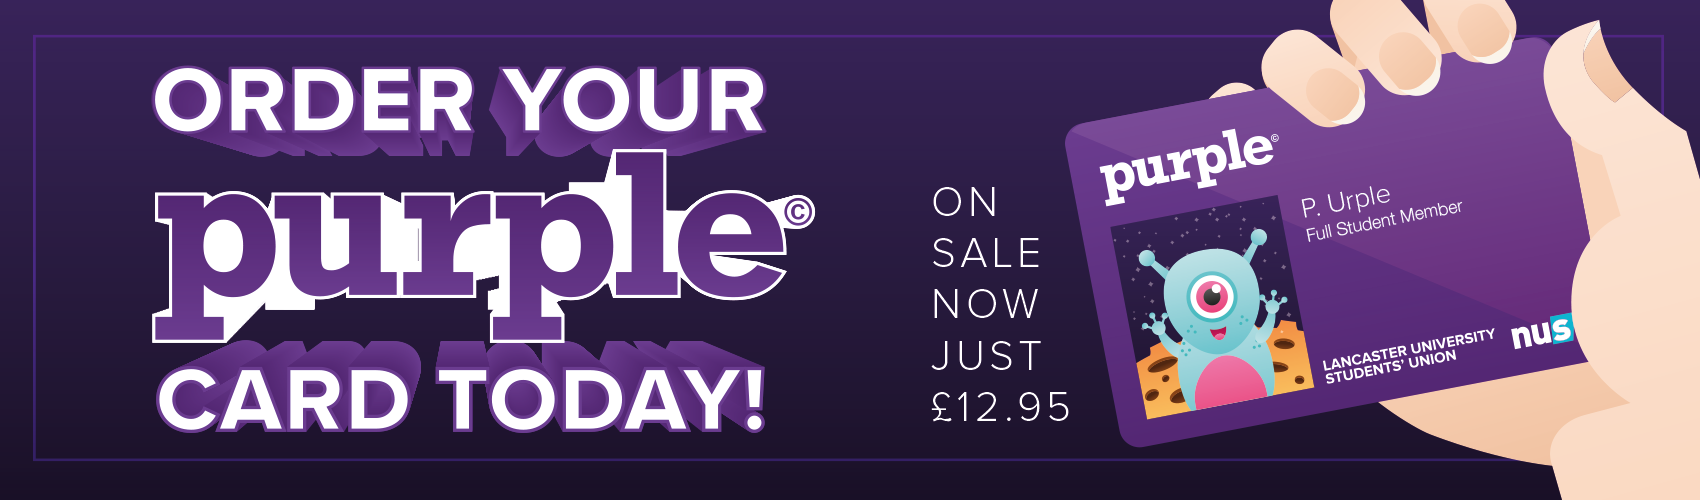 Click to order your Purple card today